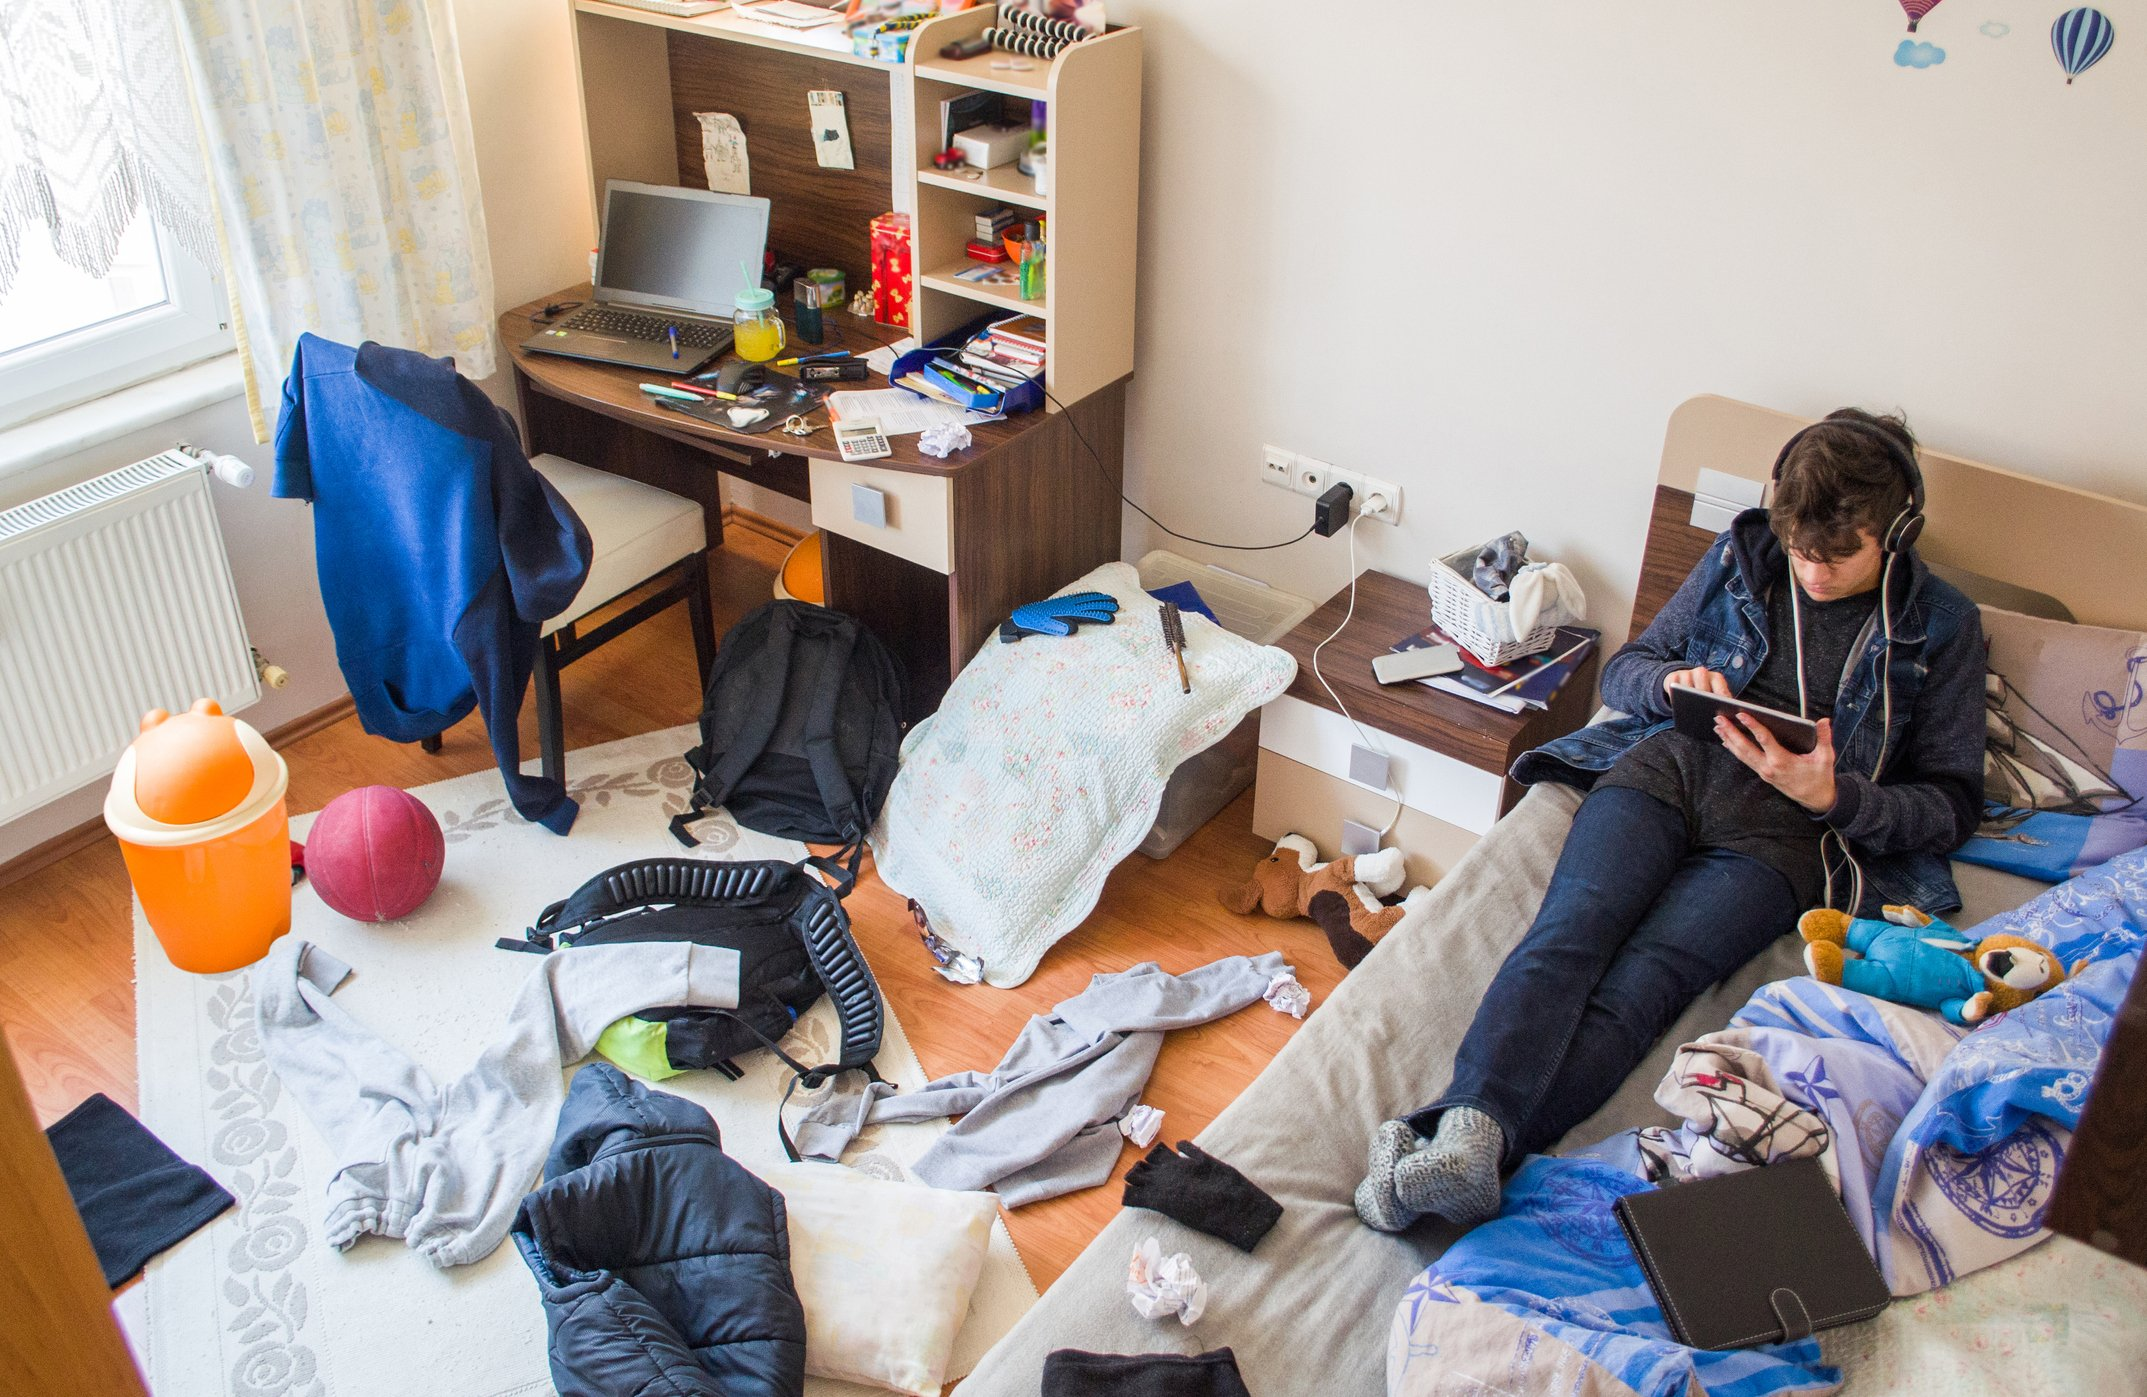 Teenager is using tablet in his messy room